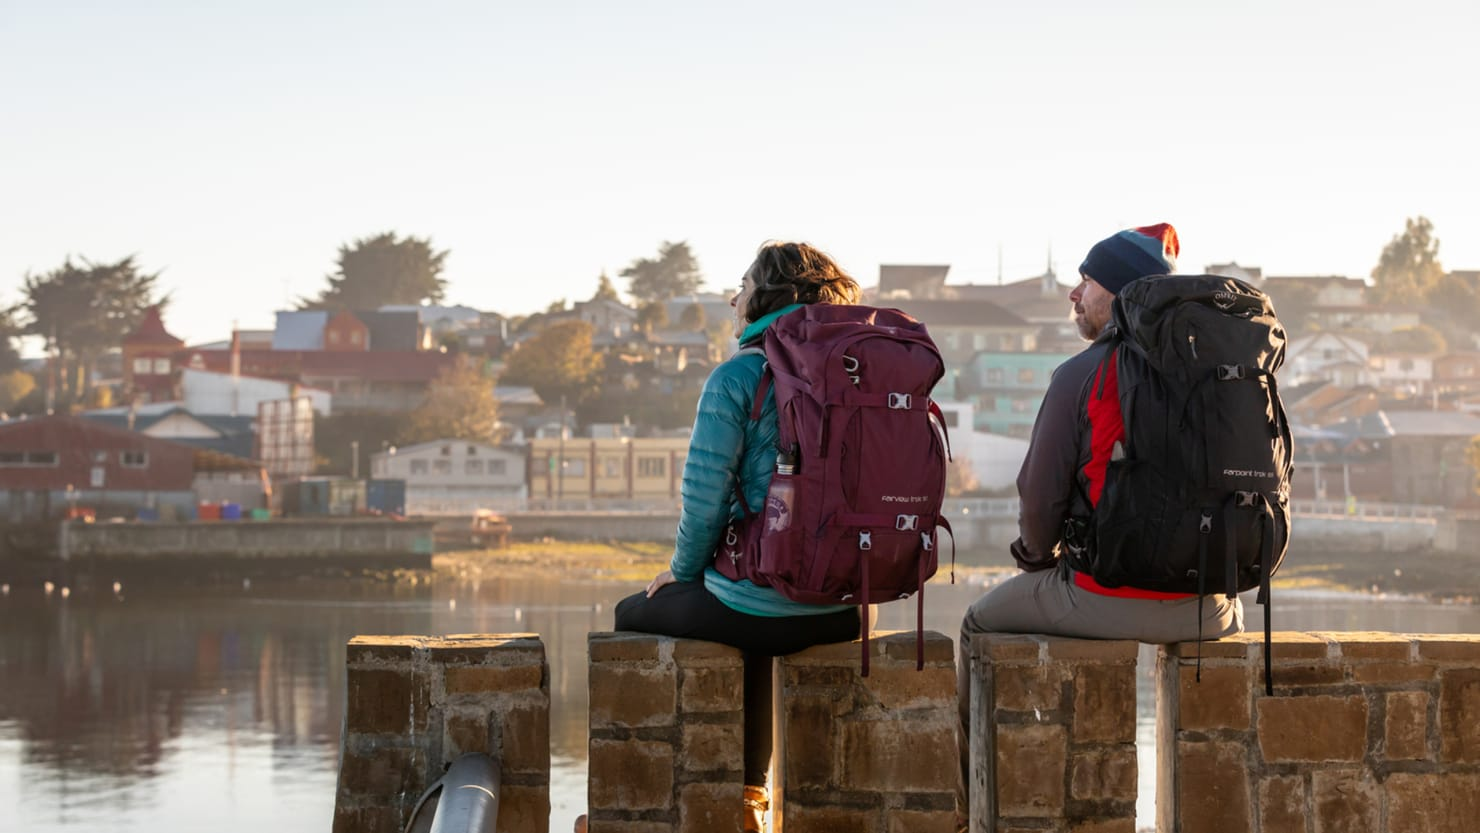 Osprey S New Hybrid Backpacks Are Designed To Cover All Travel Needs